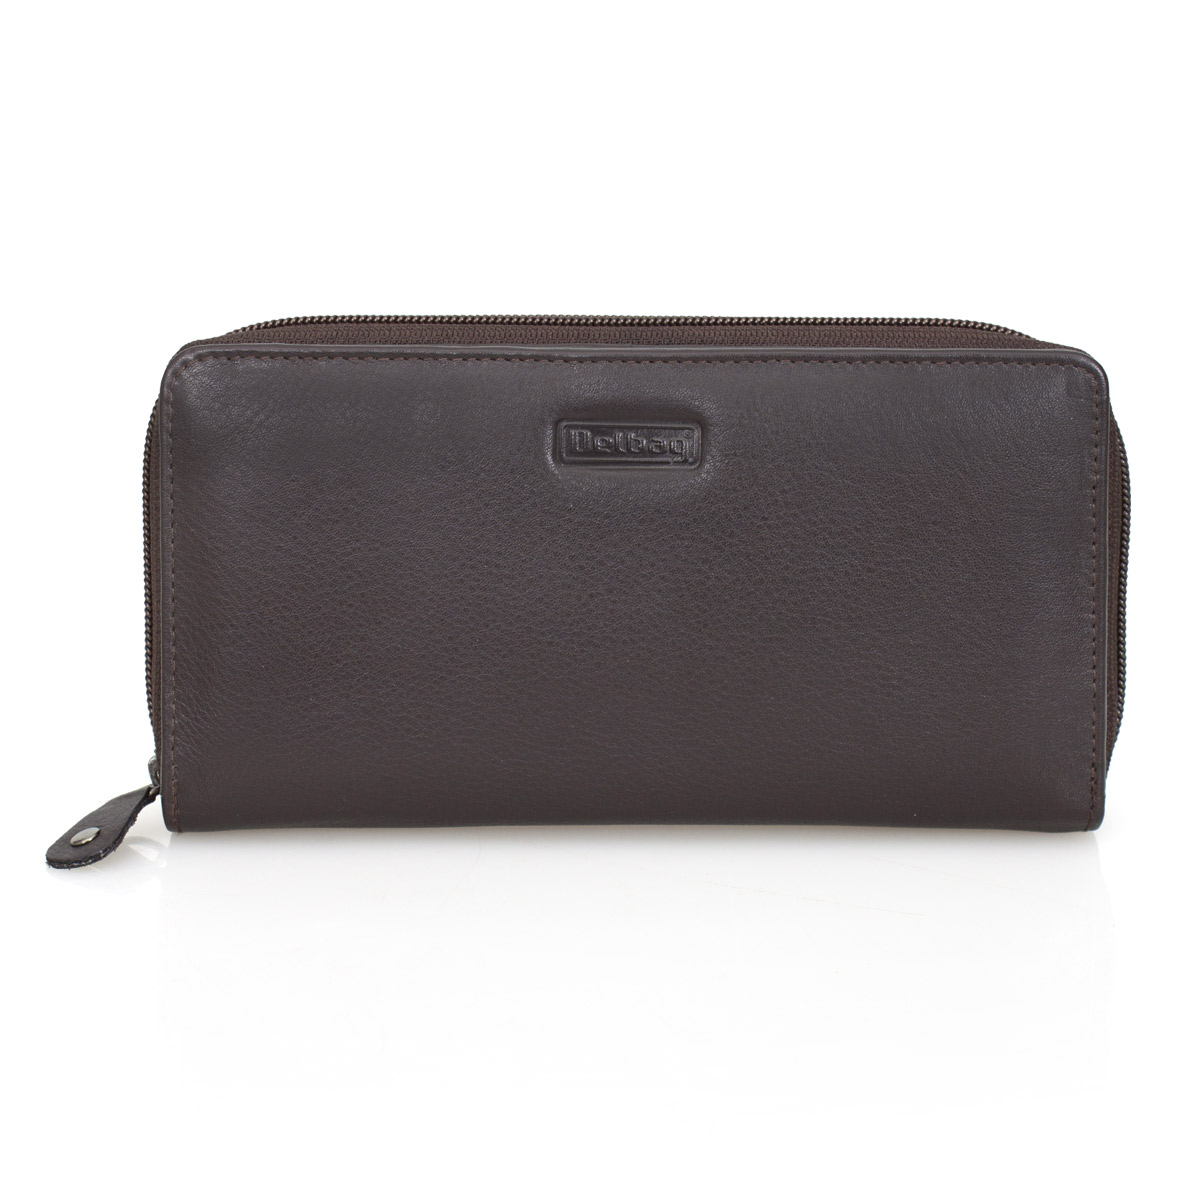 DELBAG Womens Zip Leather Wallet Large Brown